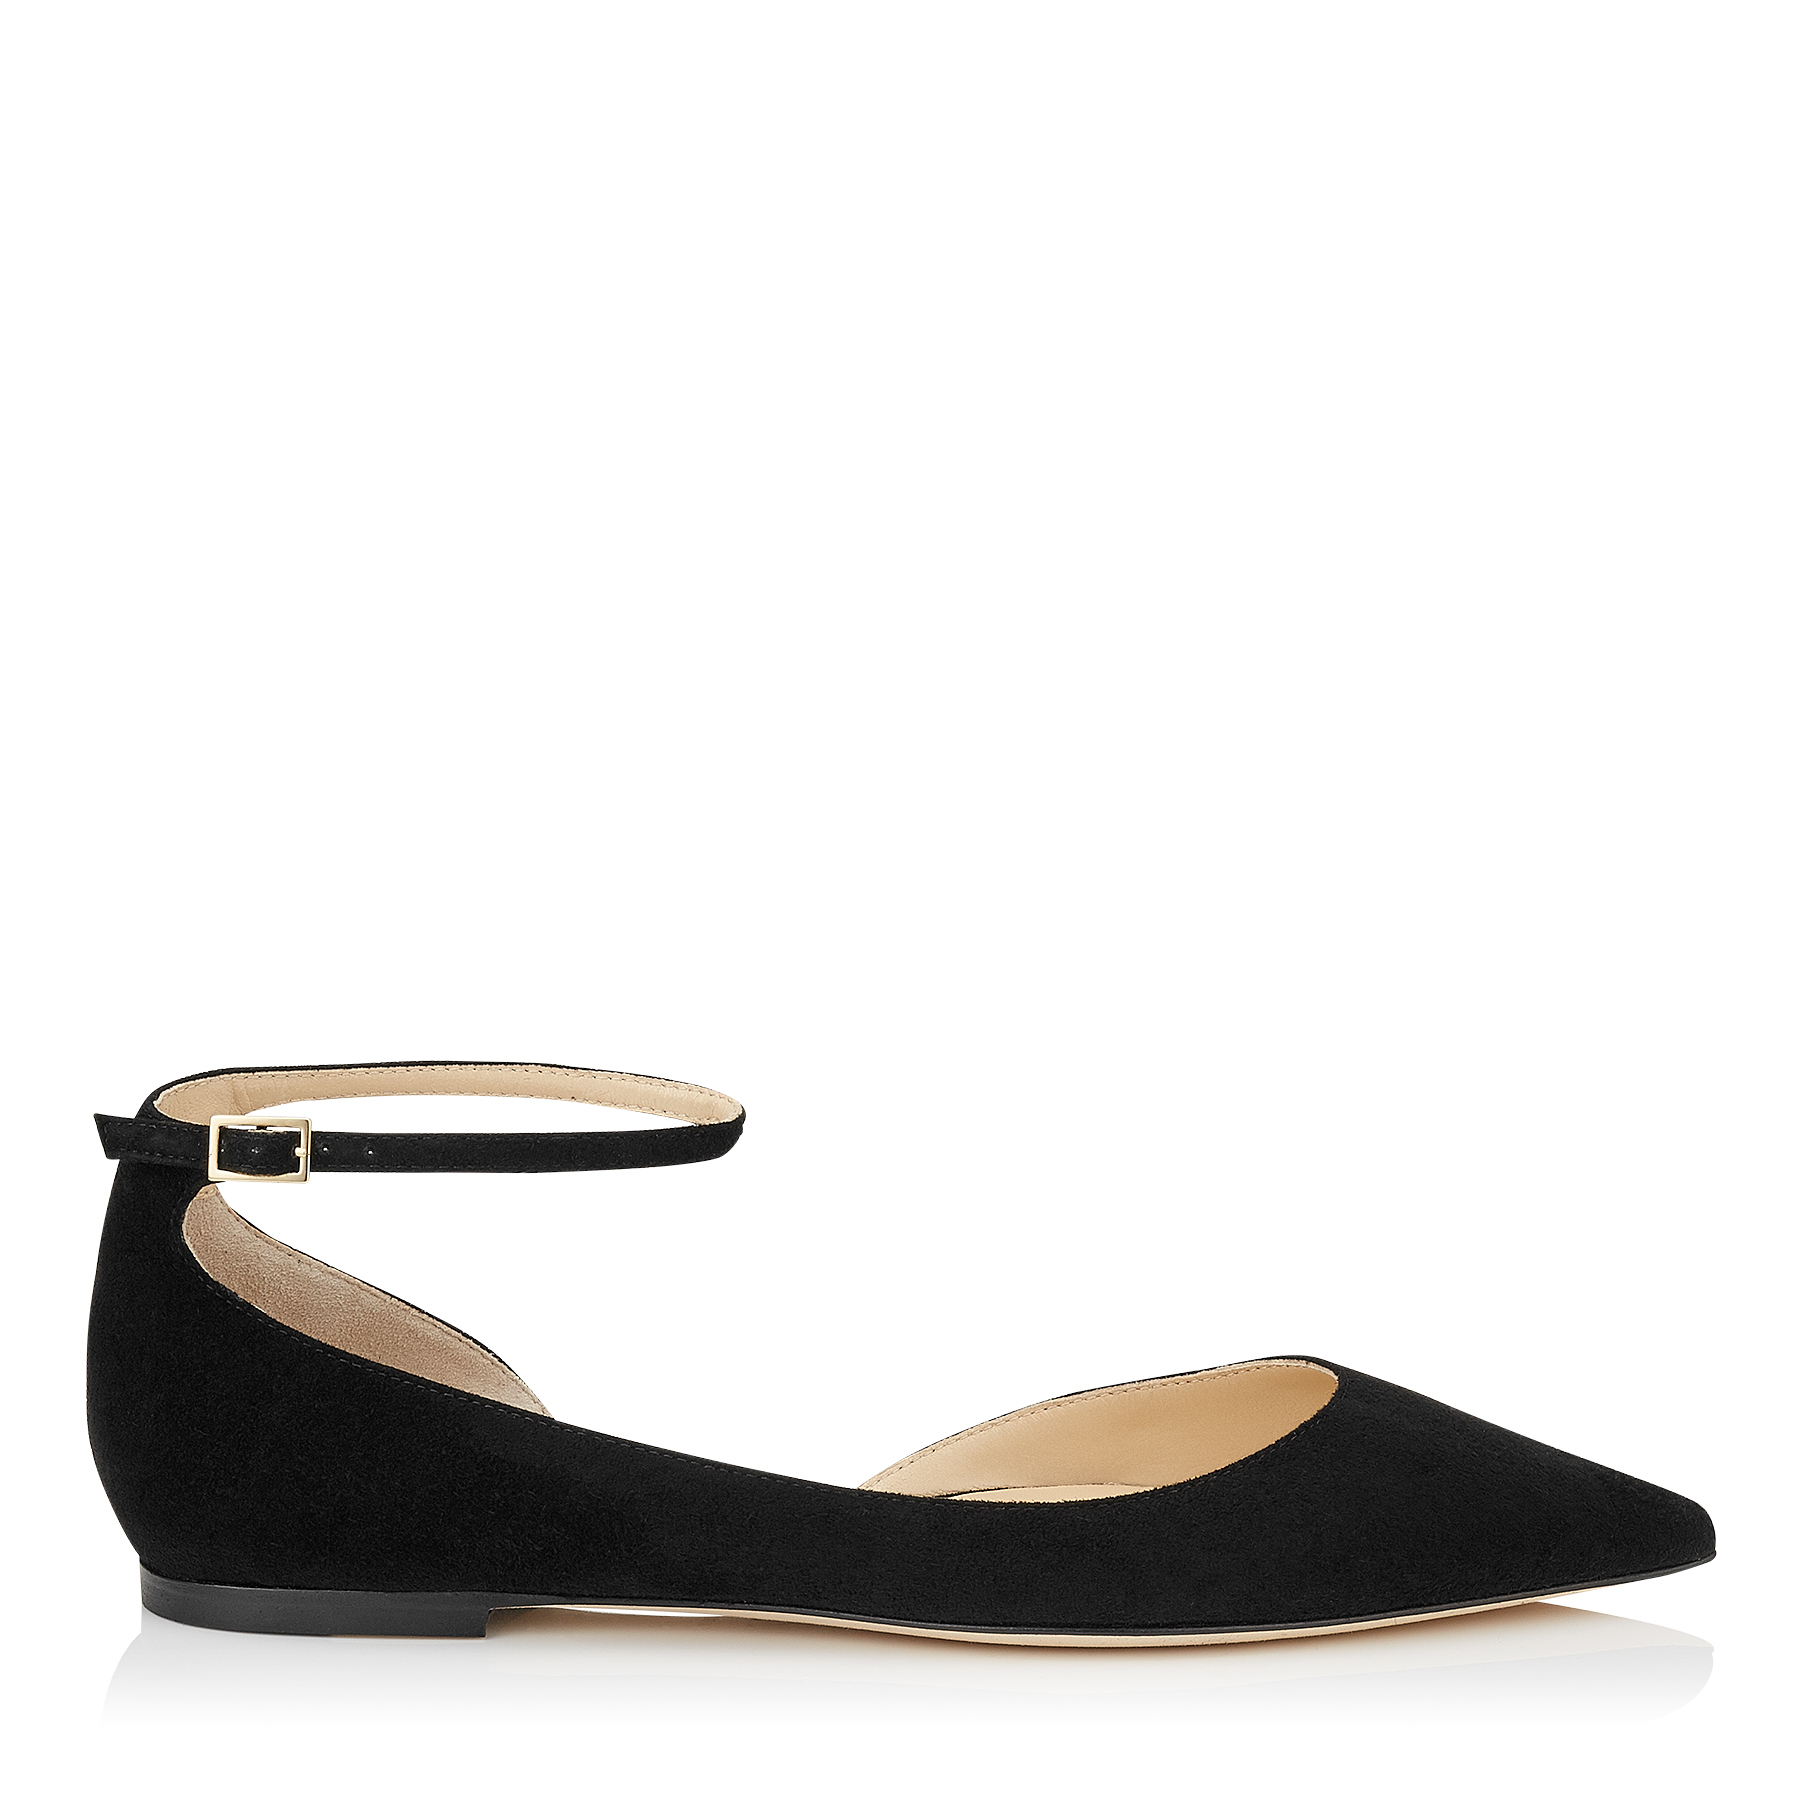 LUCY FLAT Black Suede Pointy Toe Flats by Jimmy Choo